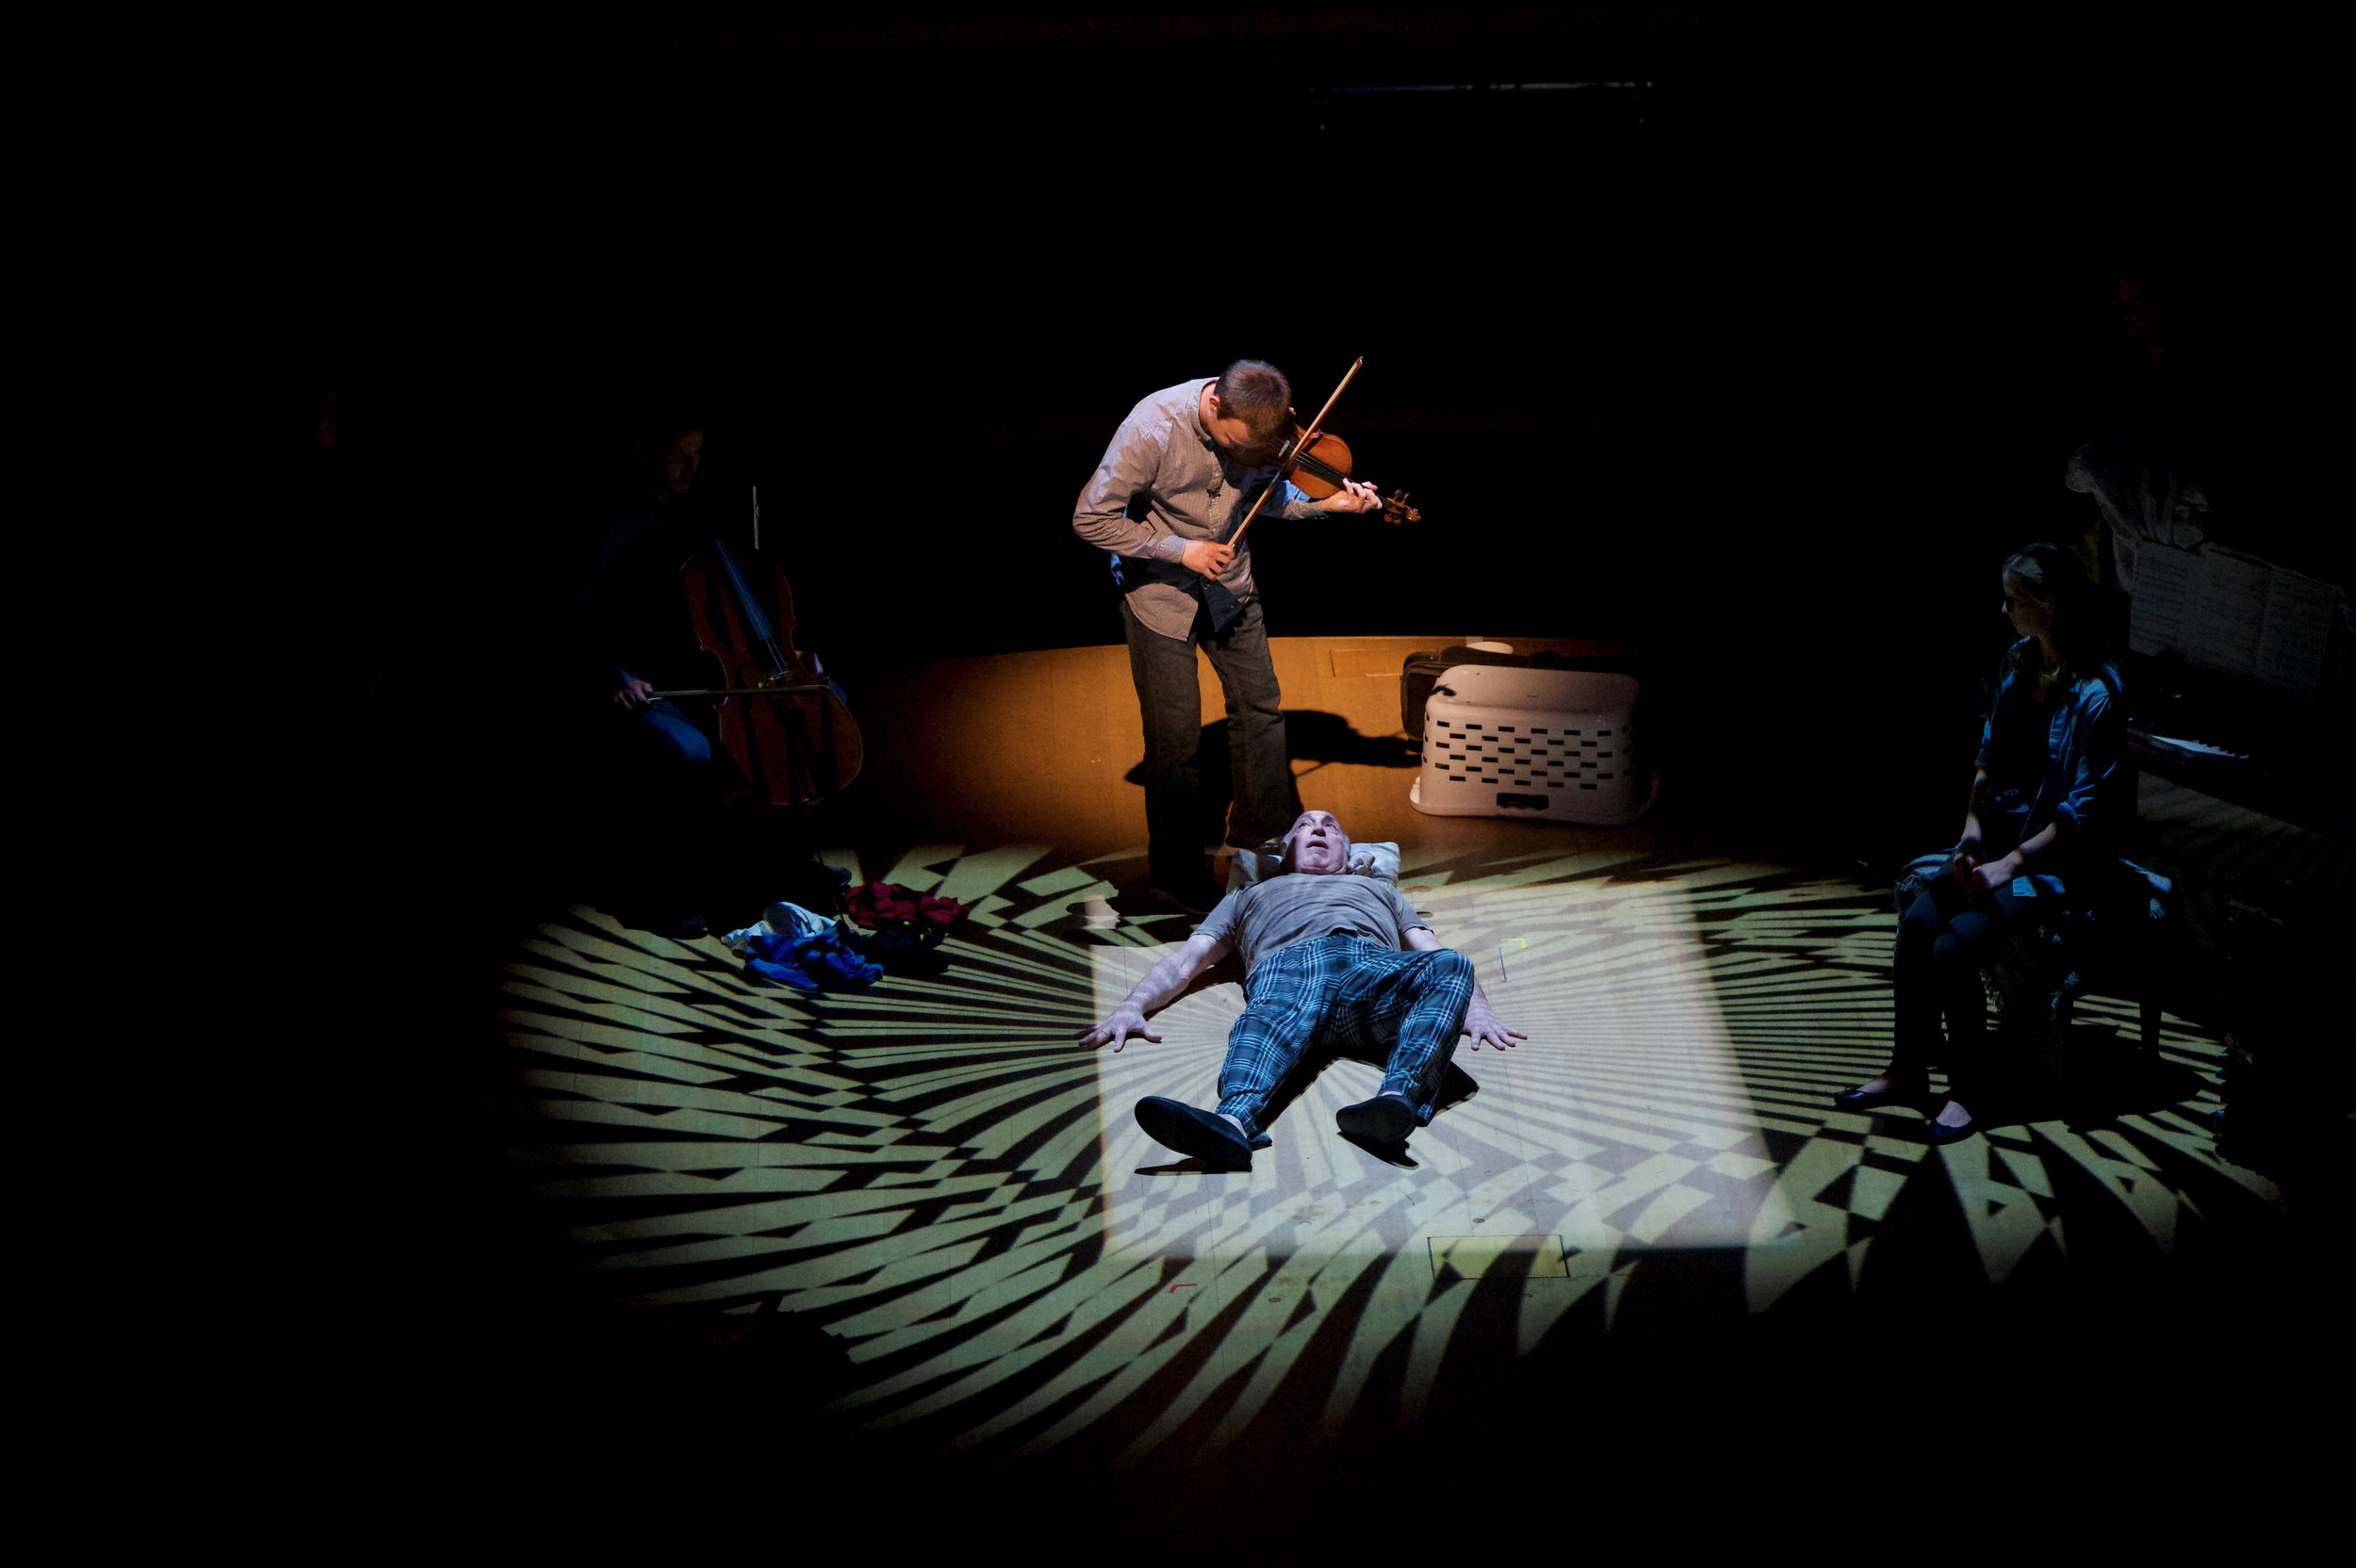 """Violinist Roman Yearian performs with Joel Leffert in Christopher Wall's """"The Inherent Sadness of Low-Lying Areas,"""" Sat., Feb. 3 at Miami Beach's New World Center. Gregory Reed photograph"""